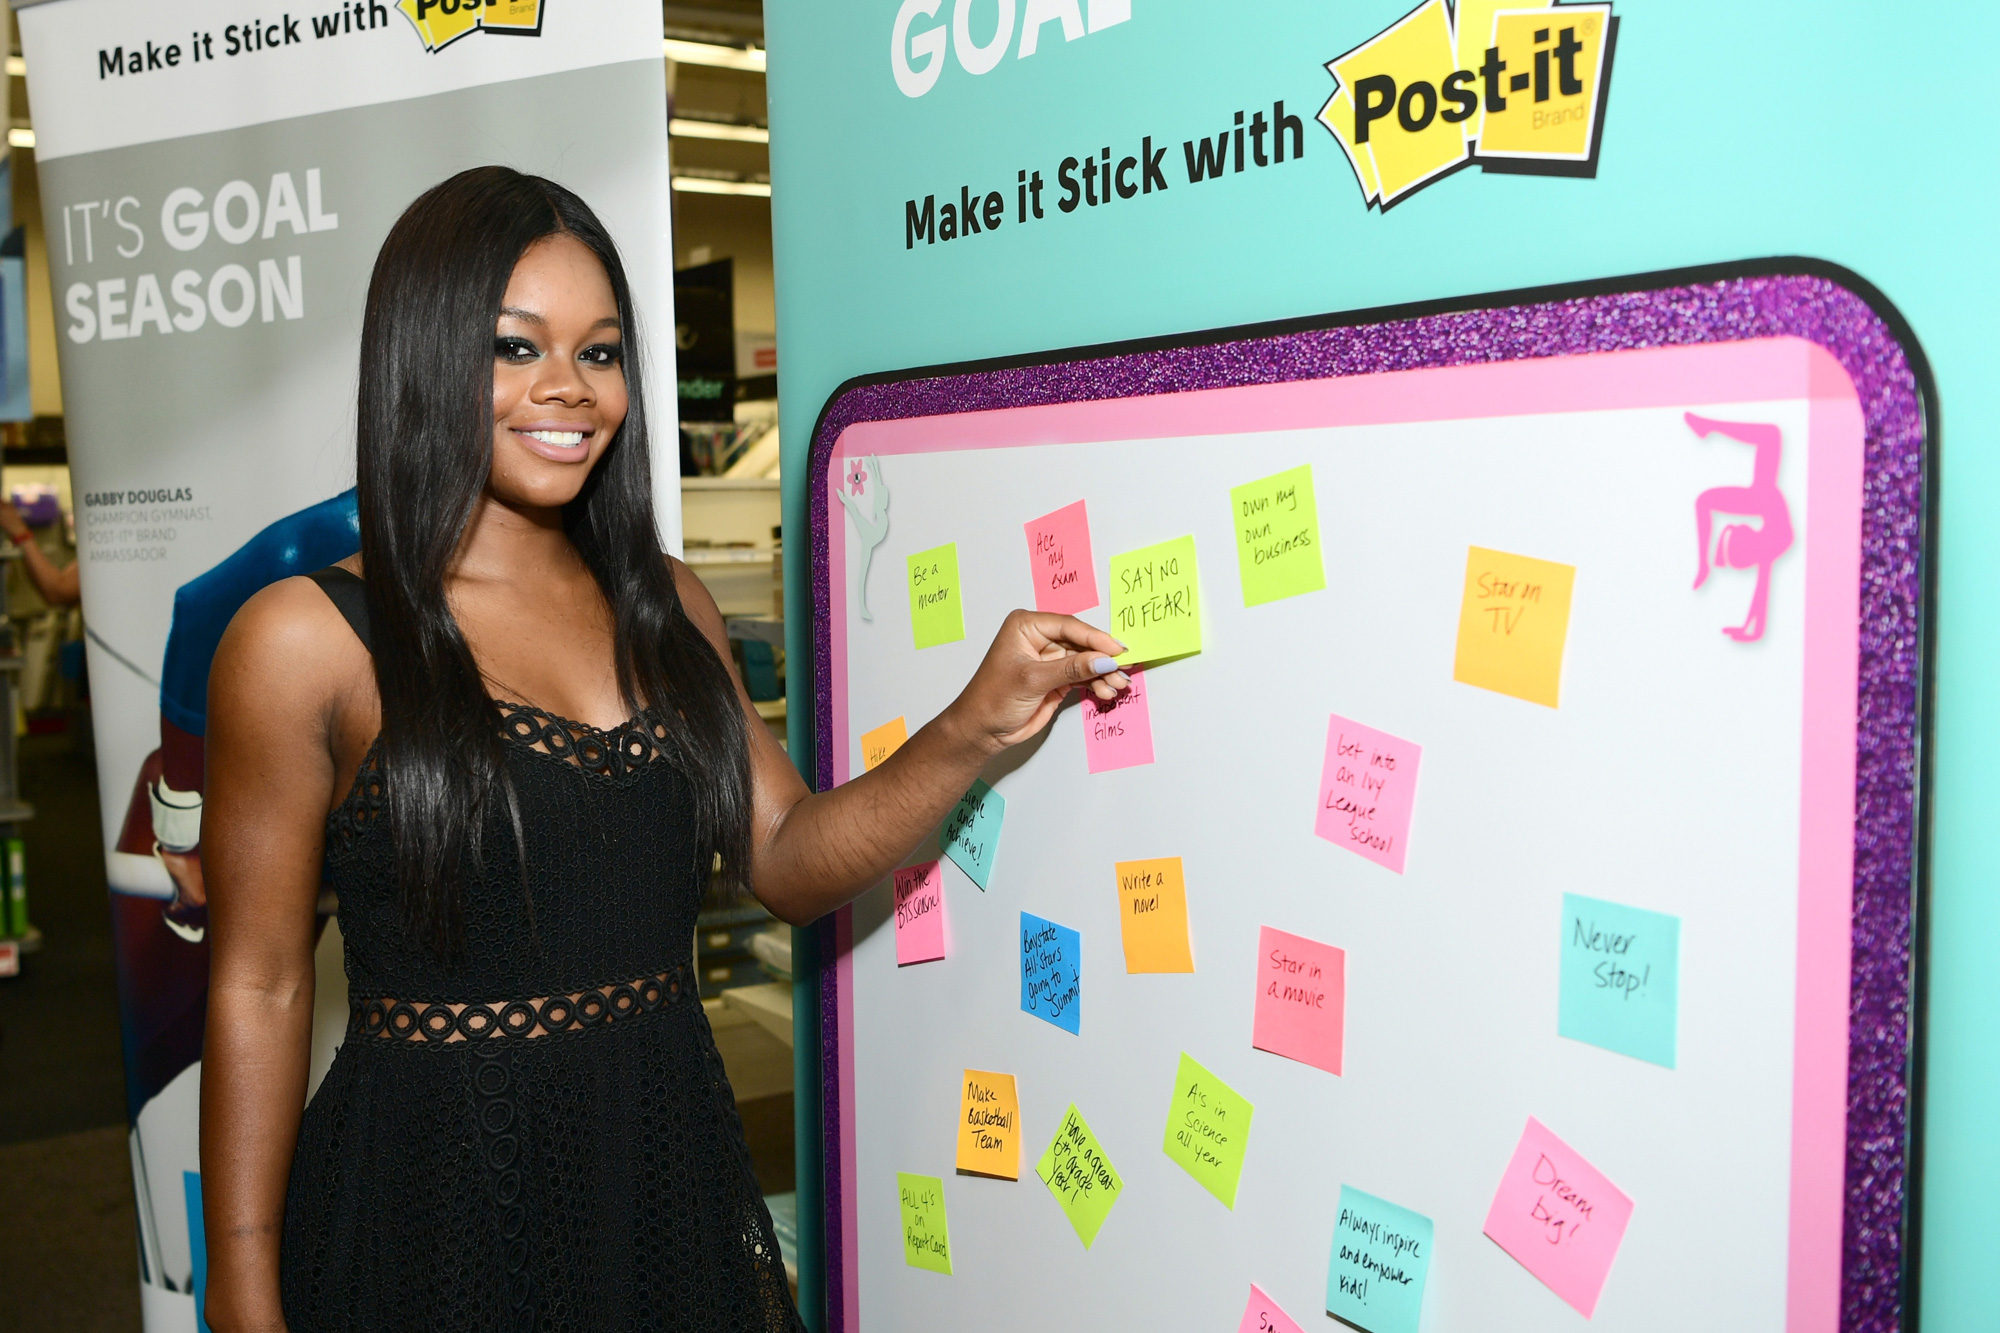 Champion Gymnast Gabby Douglas and Post-it Brand Make It Stick For Back-to-School 2017 at Staples in Burbank, CA